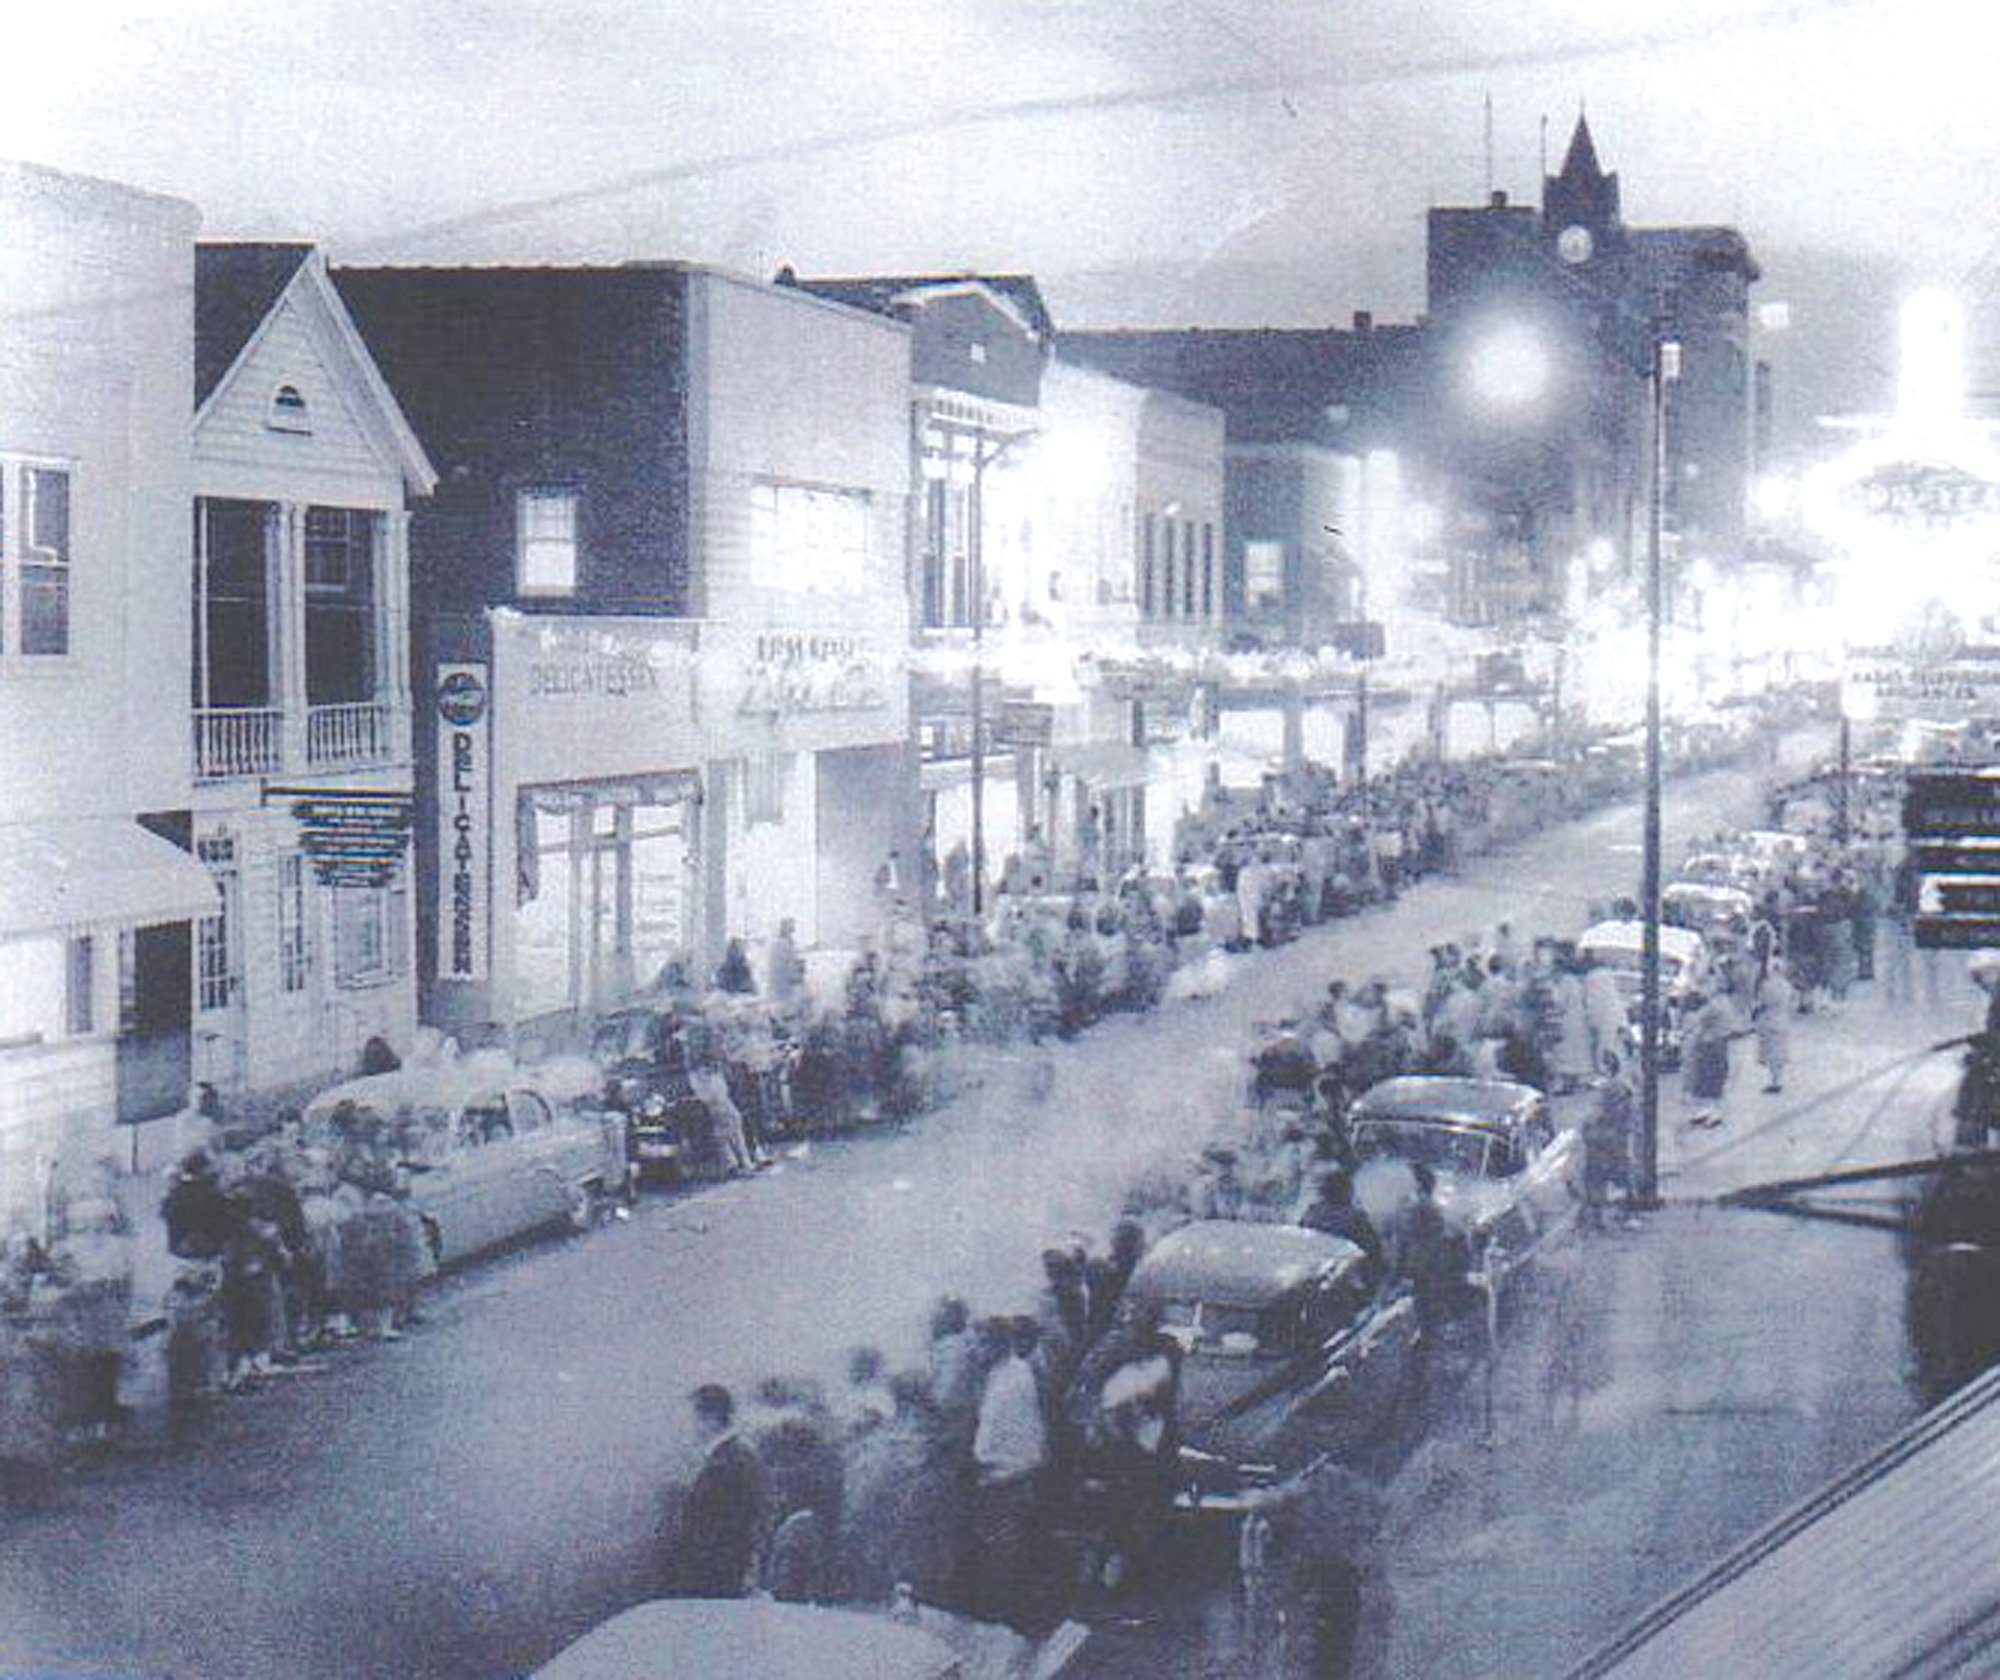 The Elizabeth White house, the building second from left, is seen next to a deli in downtown Sumter during a parade. It was thought to be one of Sumter's oldest dwellings at the time it was torn down in 1956 to make space for a new brick men's haberdashery shop.